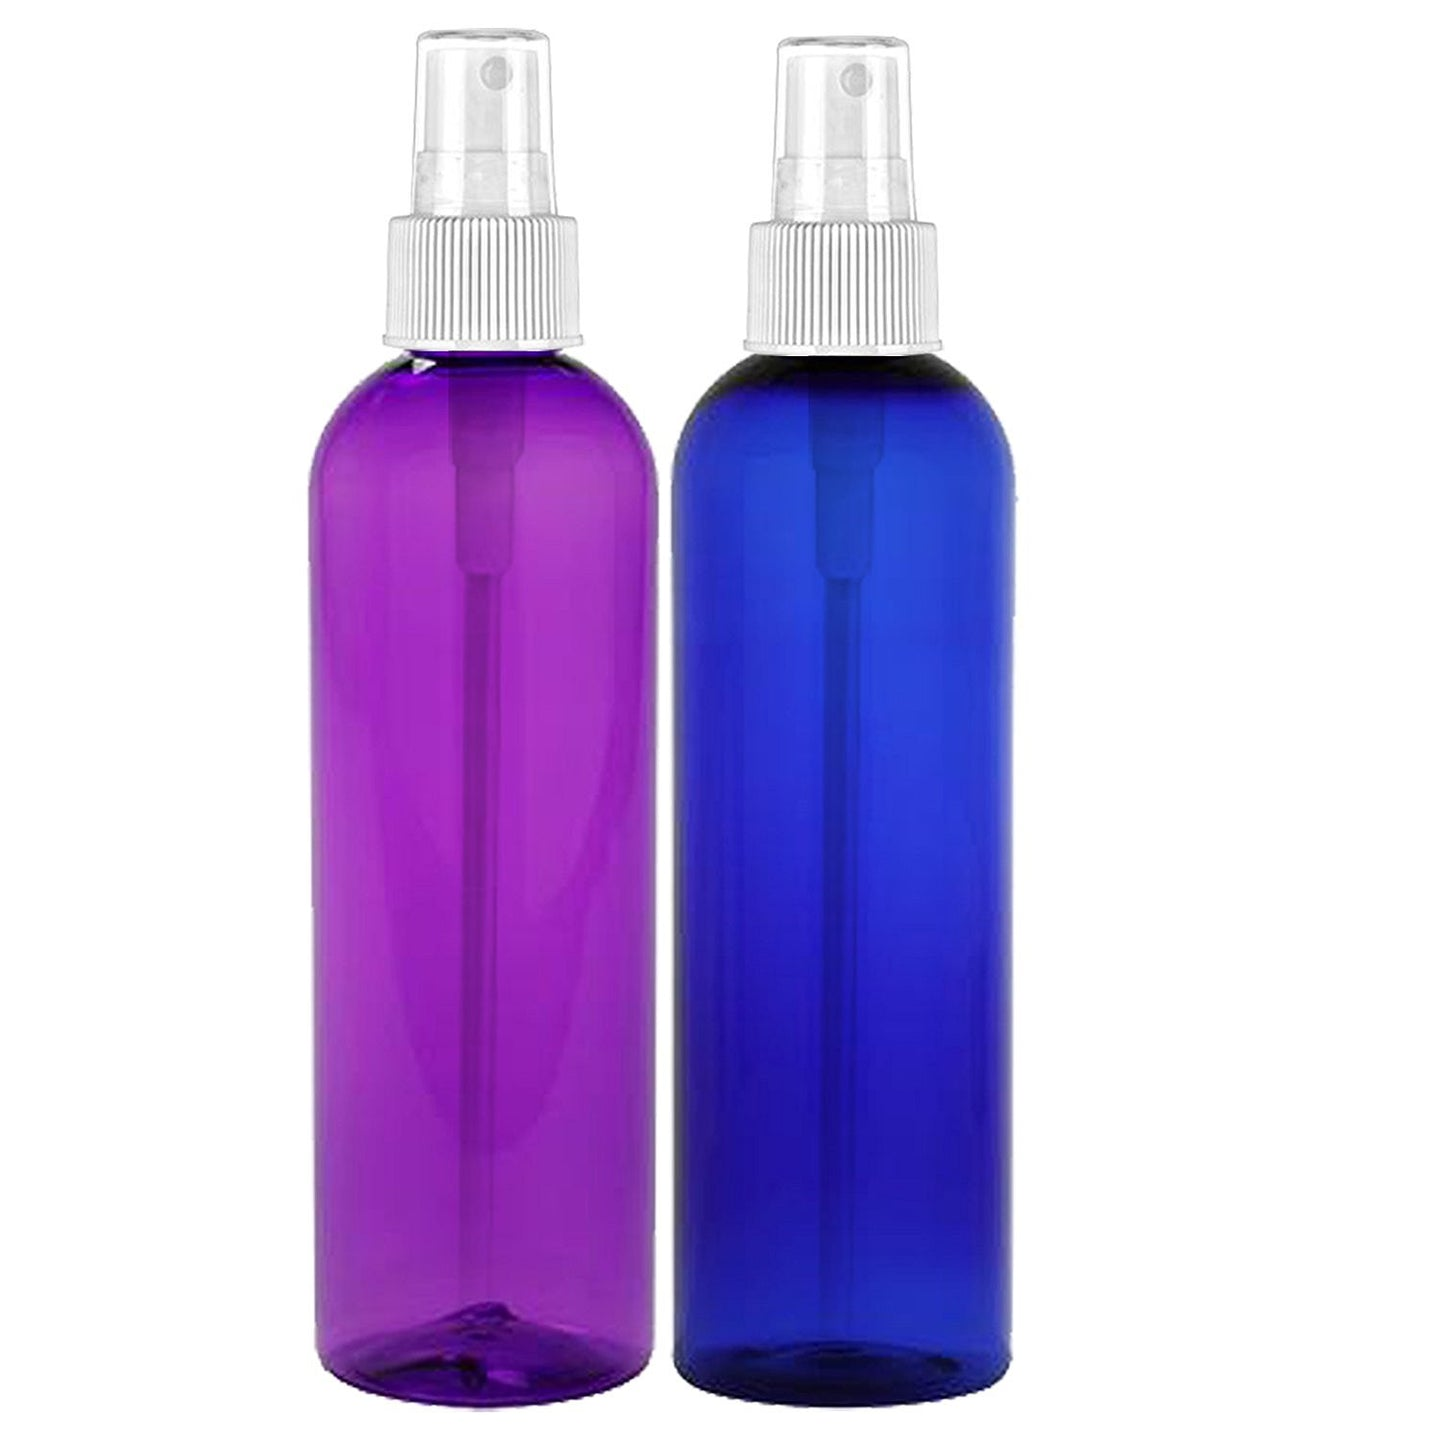 MoYo Natural Labs 8 oz Spray Bottles, Fine Mist Empty Travel Containers, BPA Free PET Plastic for Essential Oils and Liquids/Cosmetics Bottle (2 pack, Multi Color)